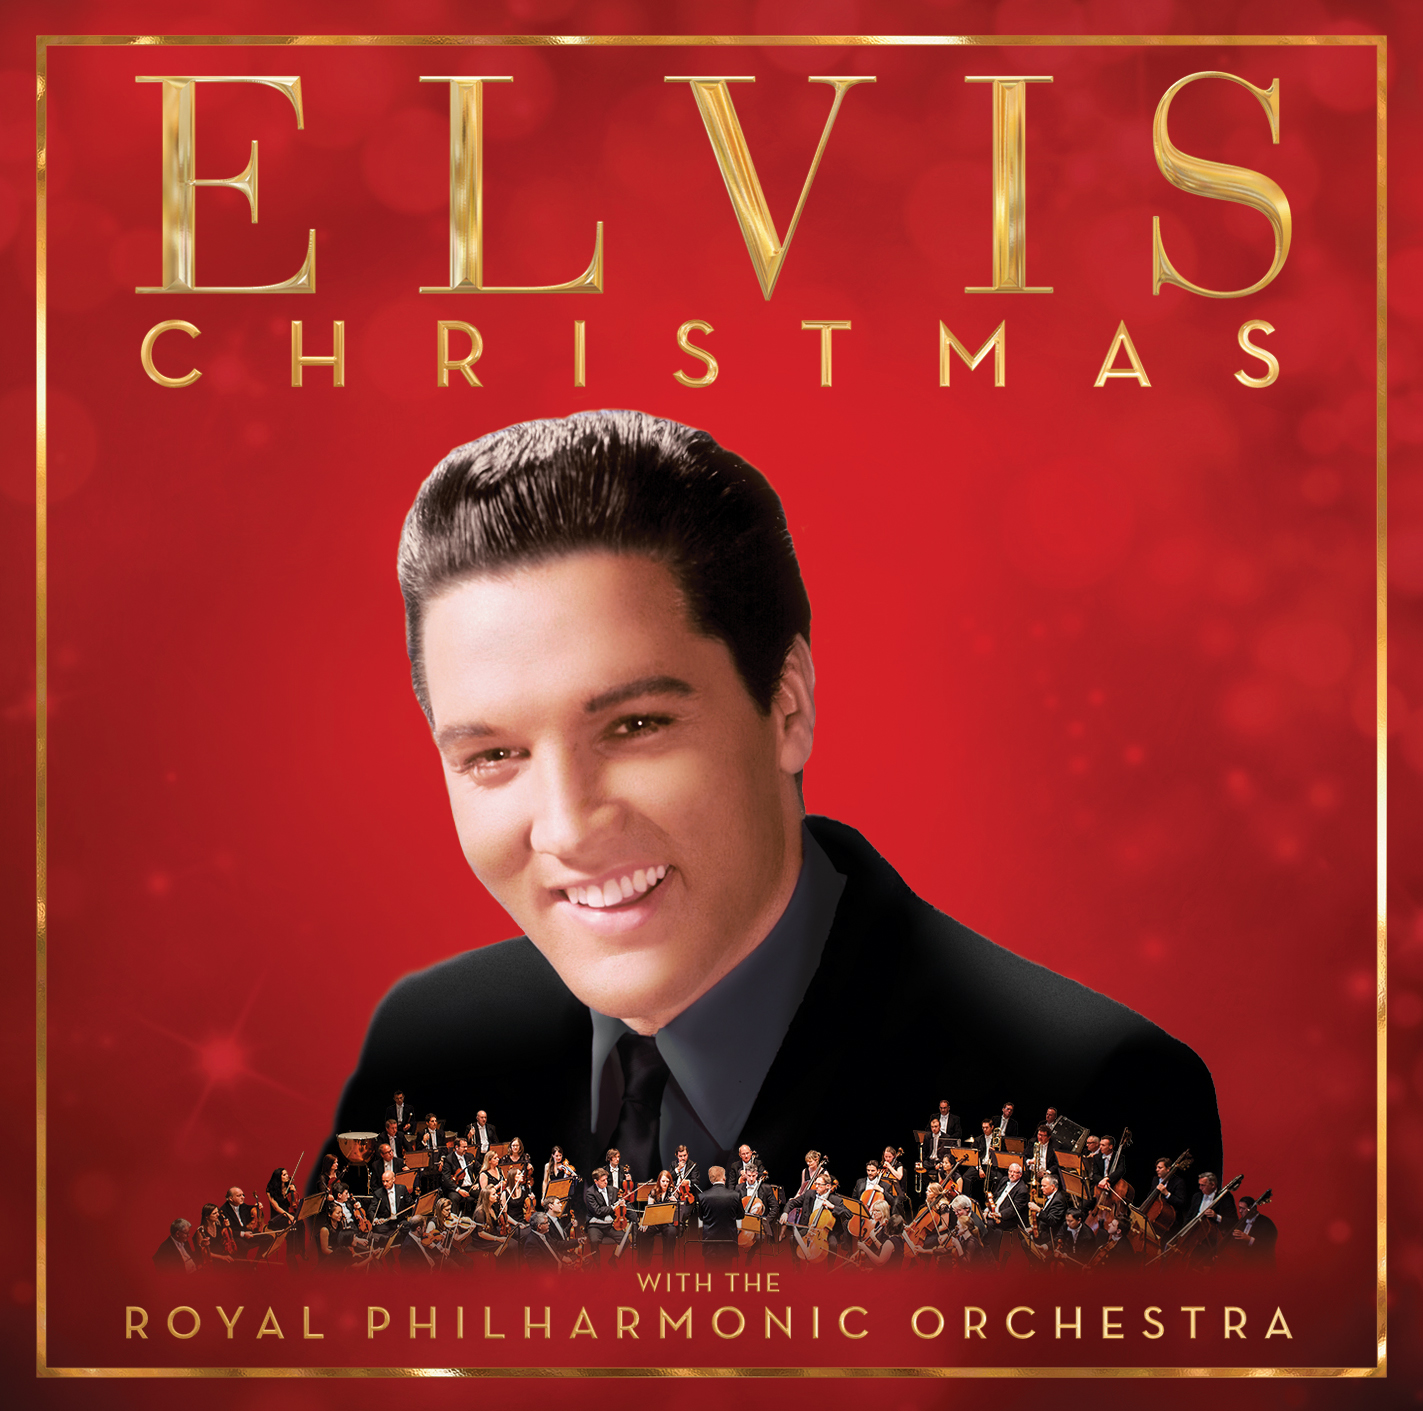 Элвис Пресли,The Royal Philharmonic Orchestra Elvis Presley, The Royal Philharmonic Orchestra. Christmas With Elvis Presley And The Royal Philharmonic Orchestra. Deluxe Edition elvis presley elvis presley royal philharmonic orchestra the wonder of you 2 lp cd